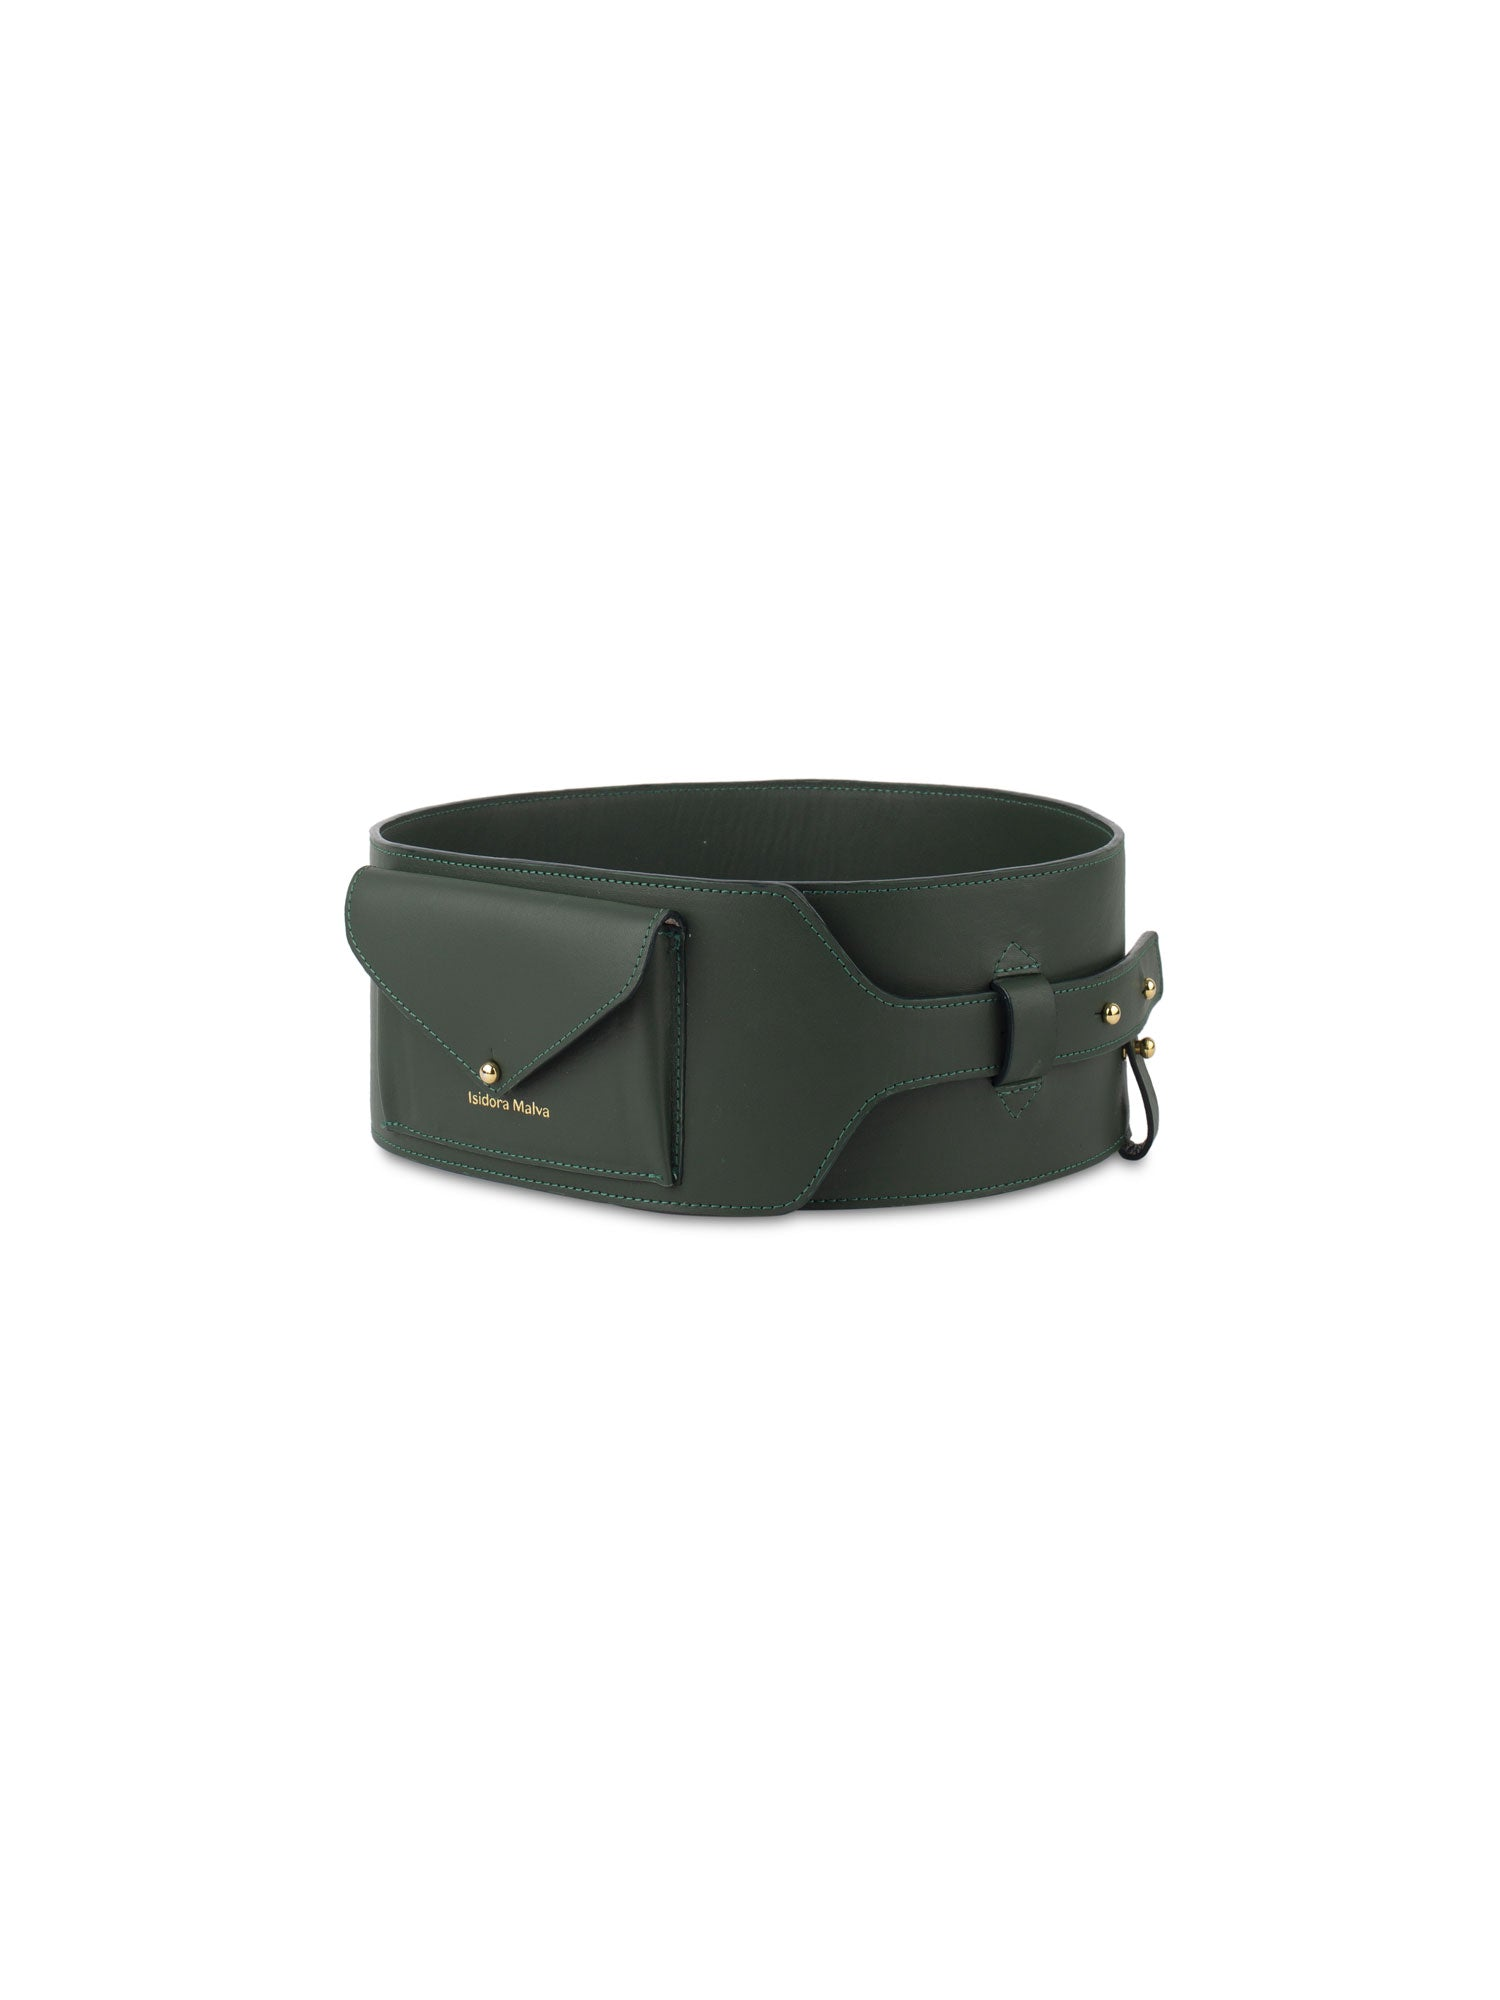 Cienaga Belt Forest Green 3.0